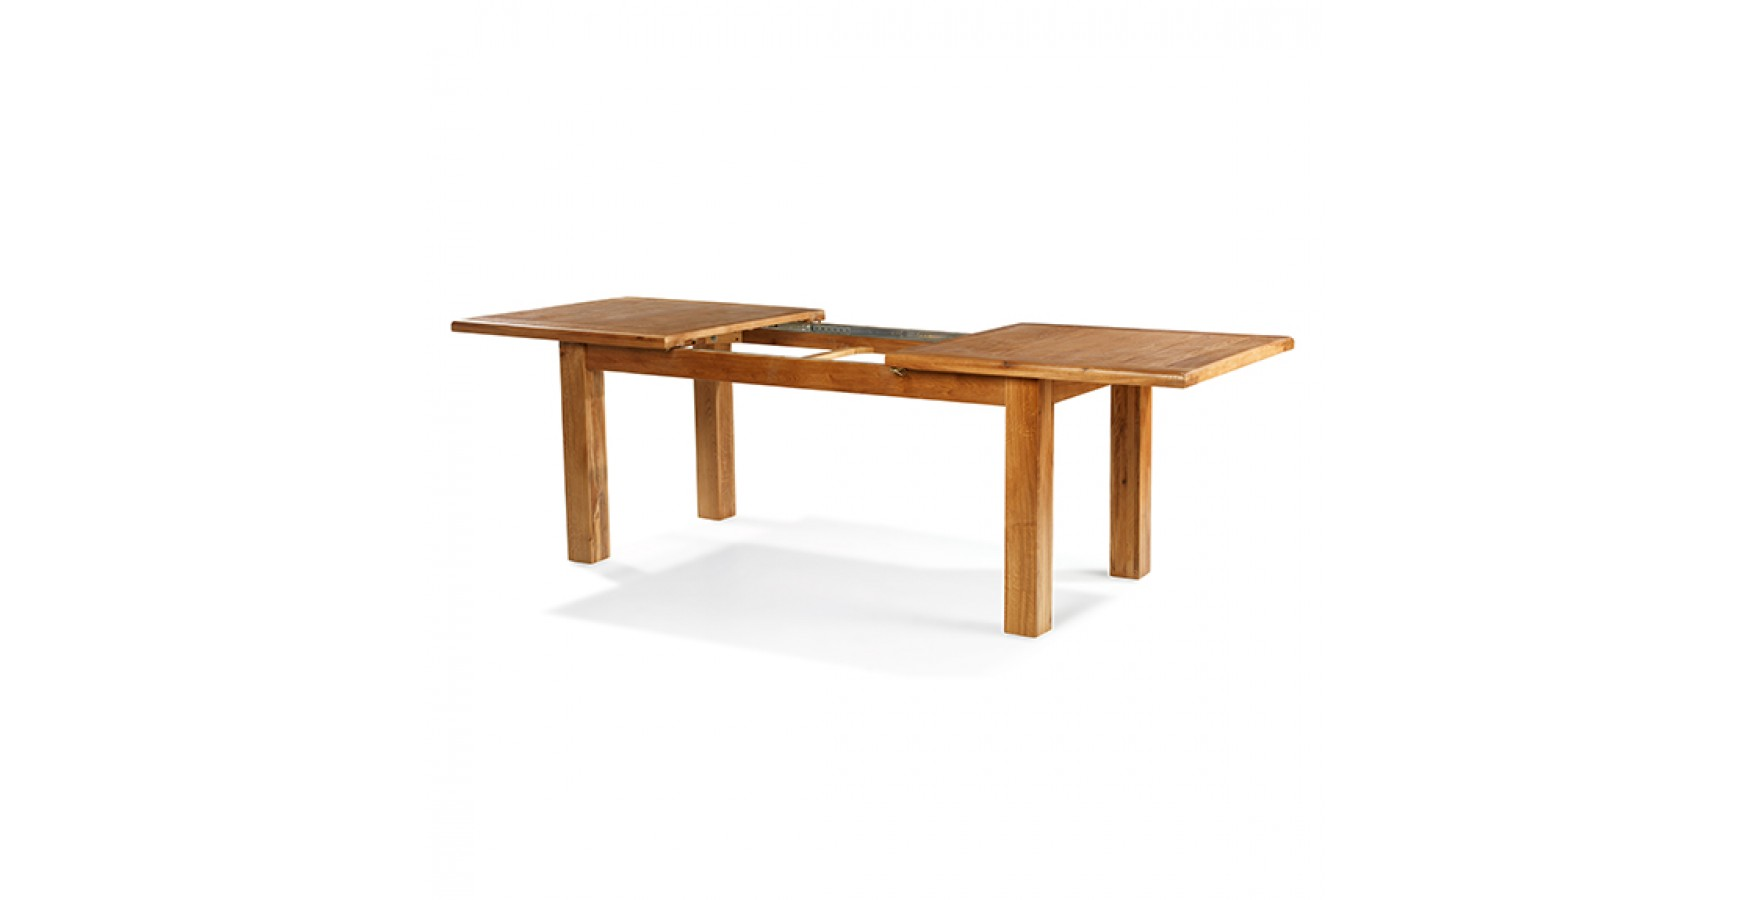 Emsworth Oak 120 150 Cm Extending Dining Table Lifestyle Furniture . Full resolution‎  img, nominally Width 1750 Height 900 pixels, img with #4D1F04.